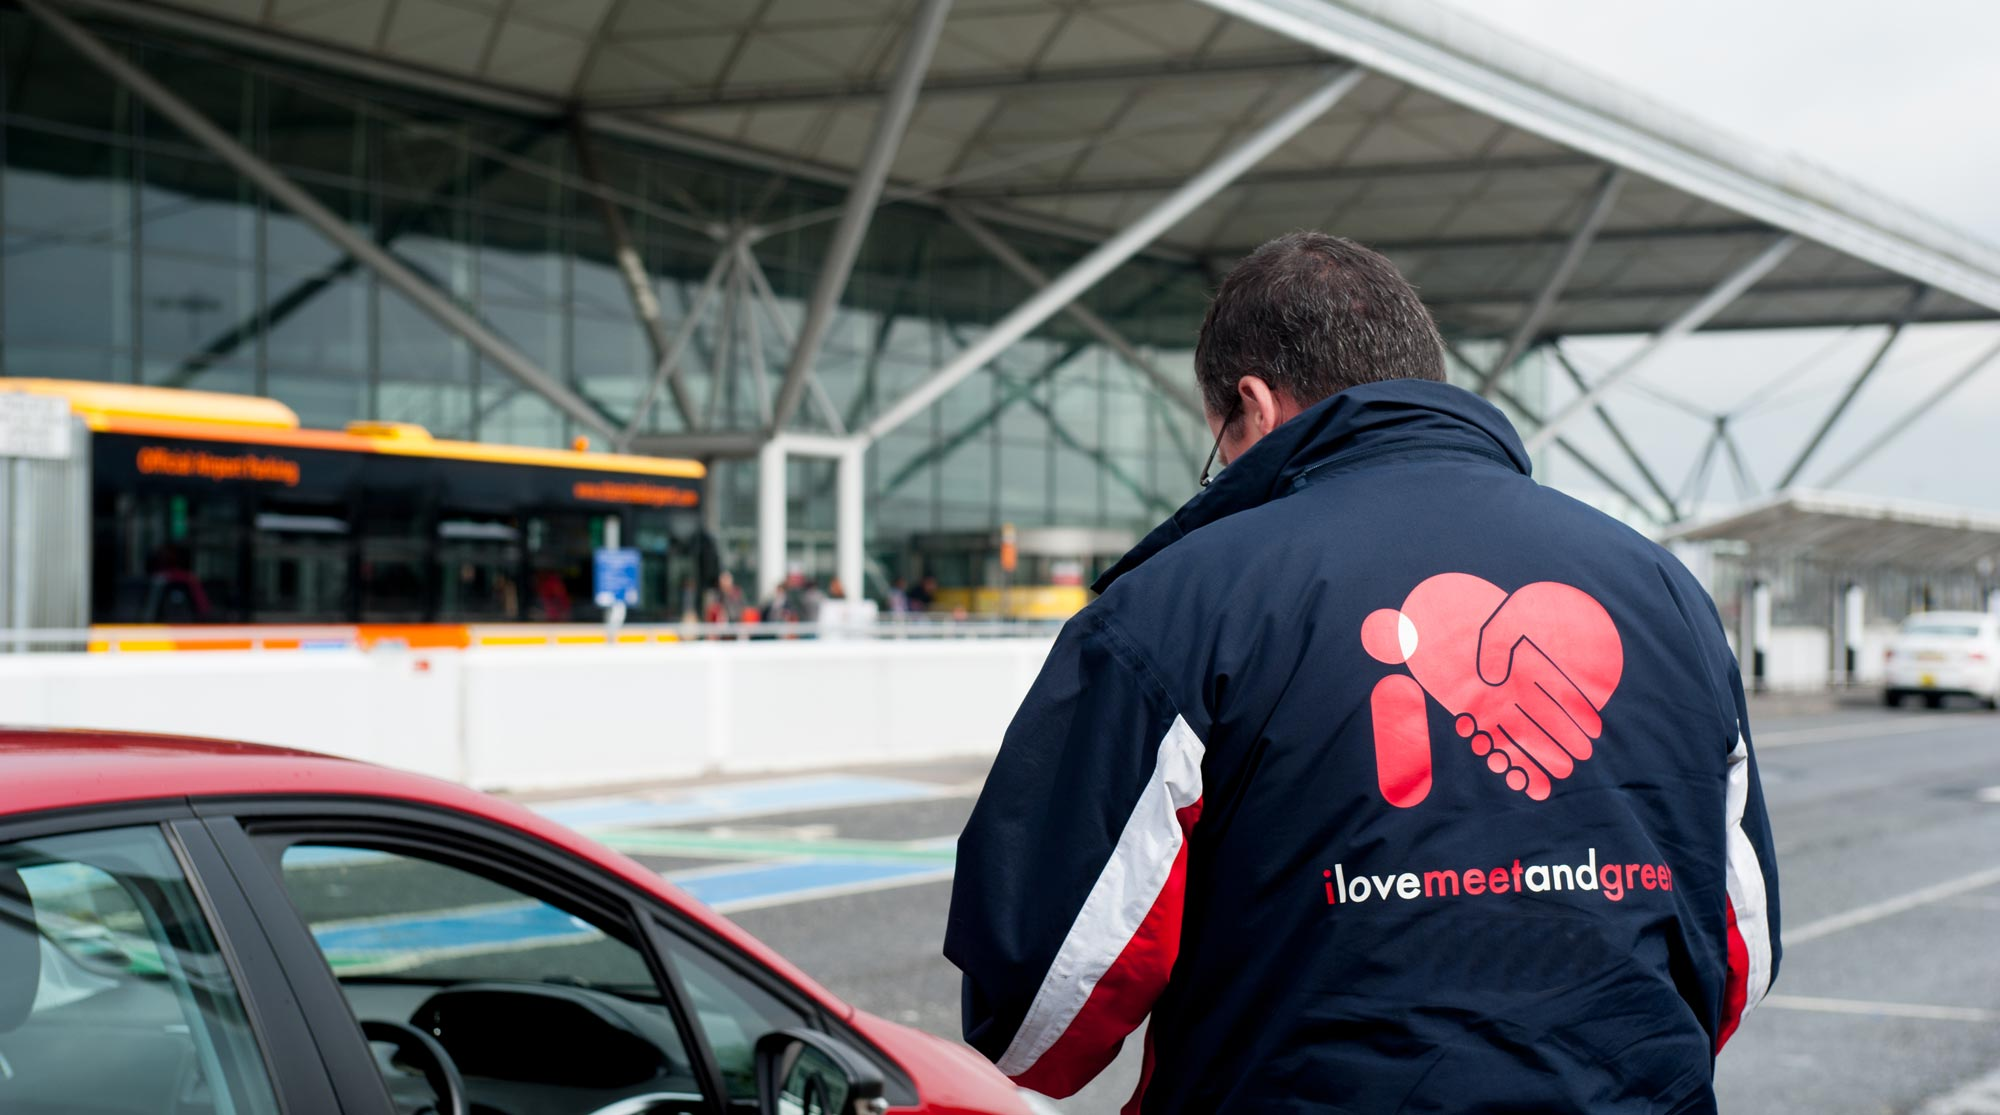 I love meet and greet stansted stansted airport parking i love meet and greet driver at terminal kristyandbryce Image collections